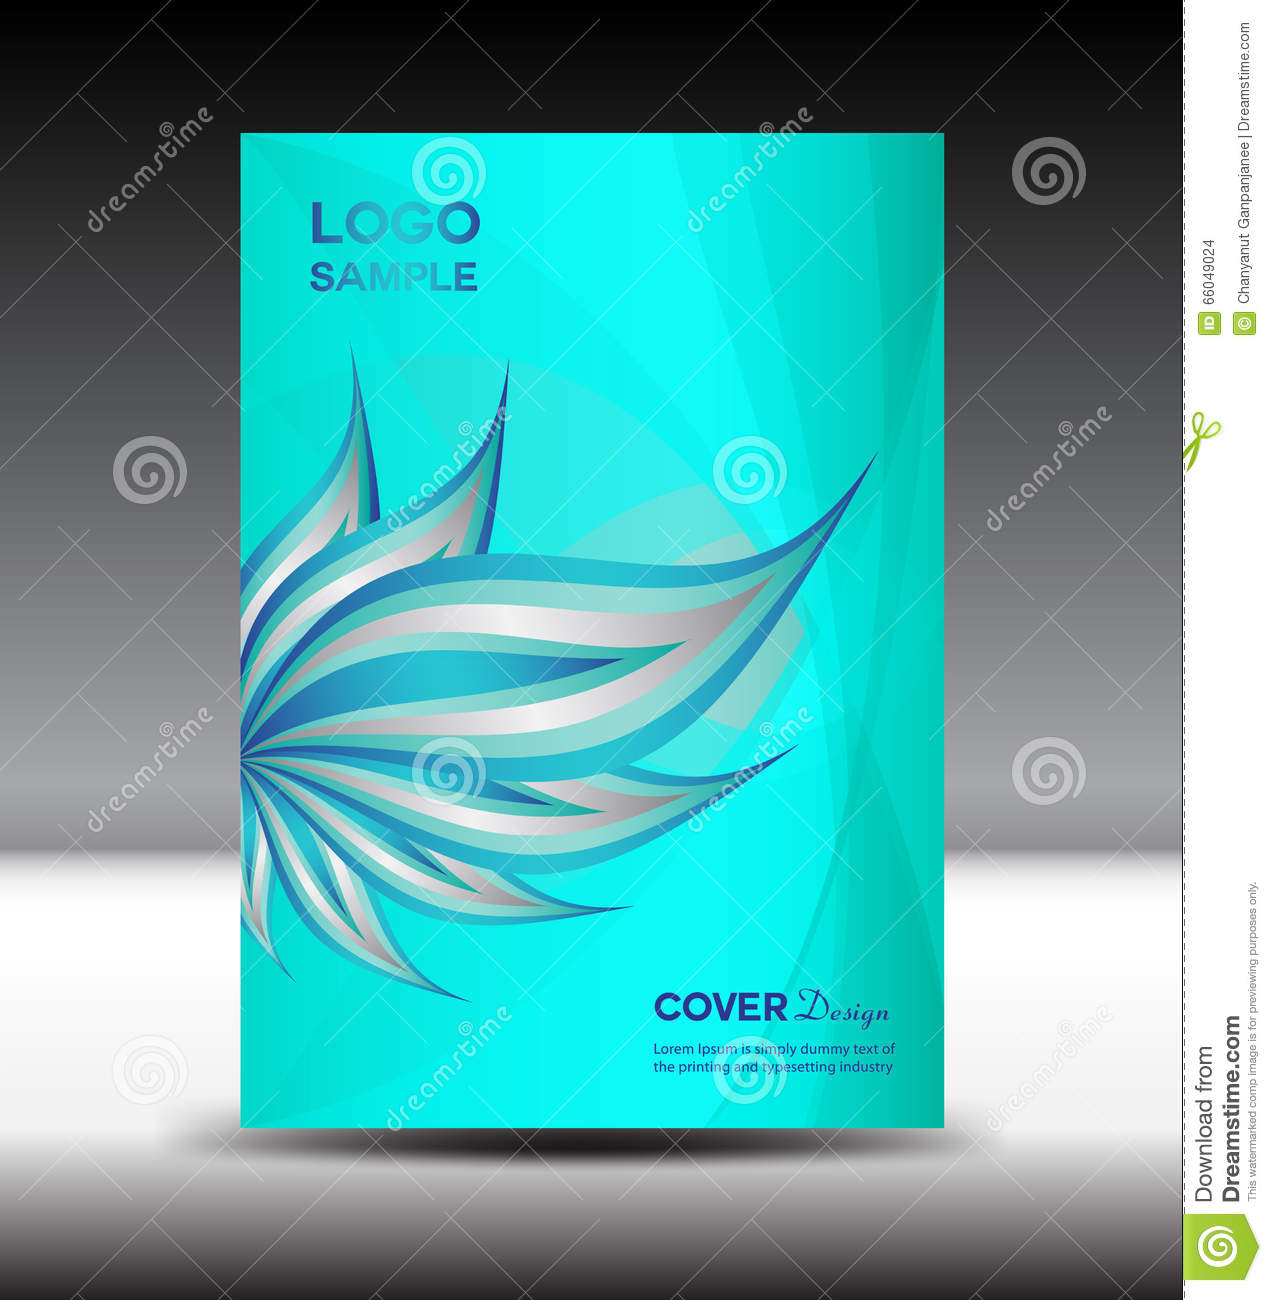 cover design template vector brochure white cover design vector blue cover design template vector brochure white cover design vector illustration stock images